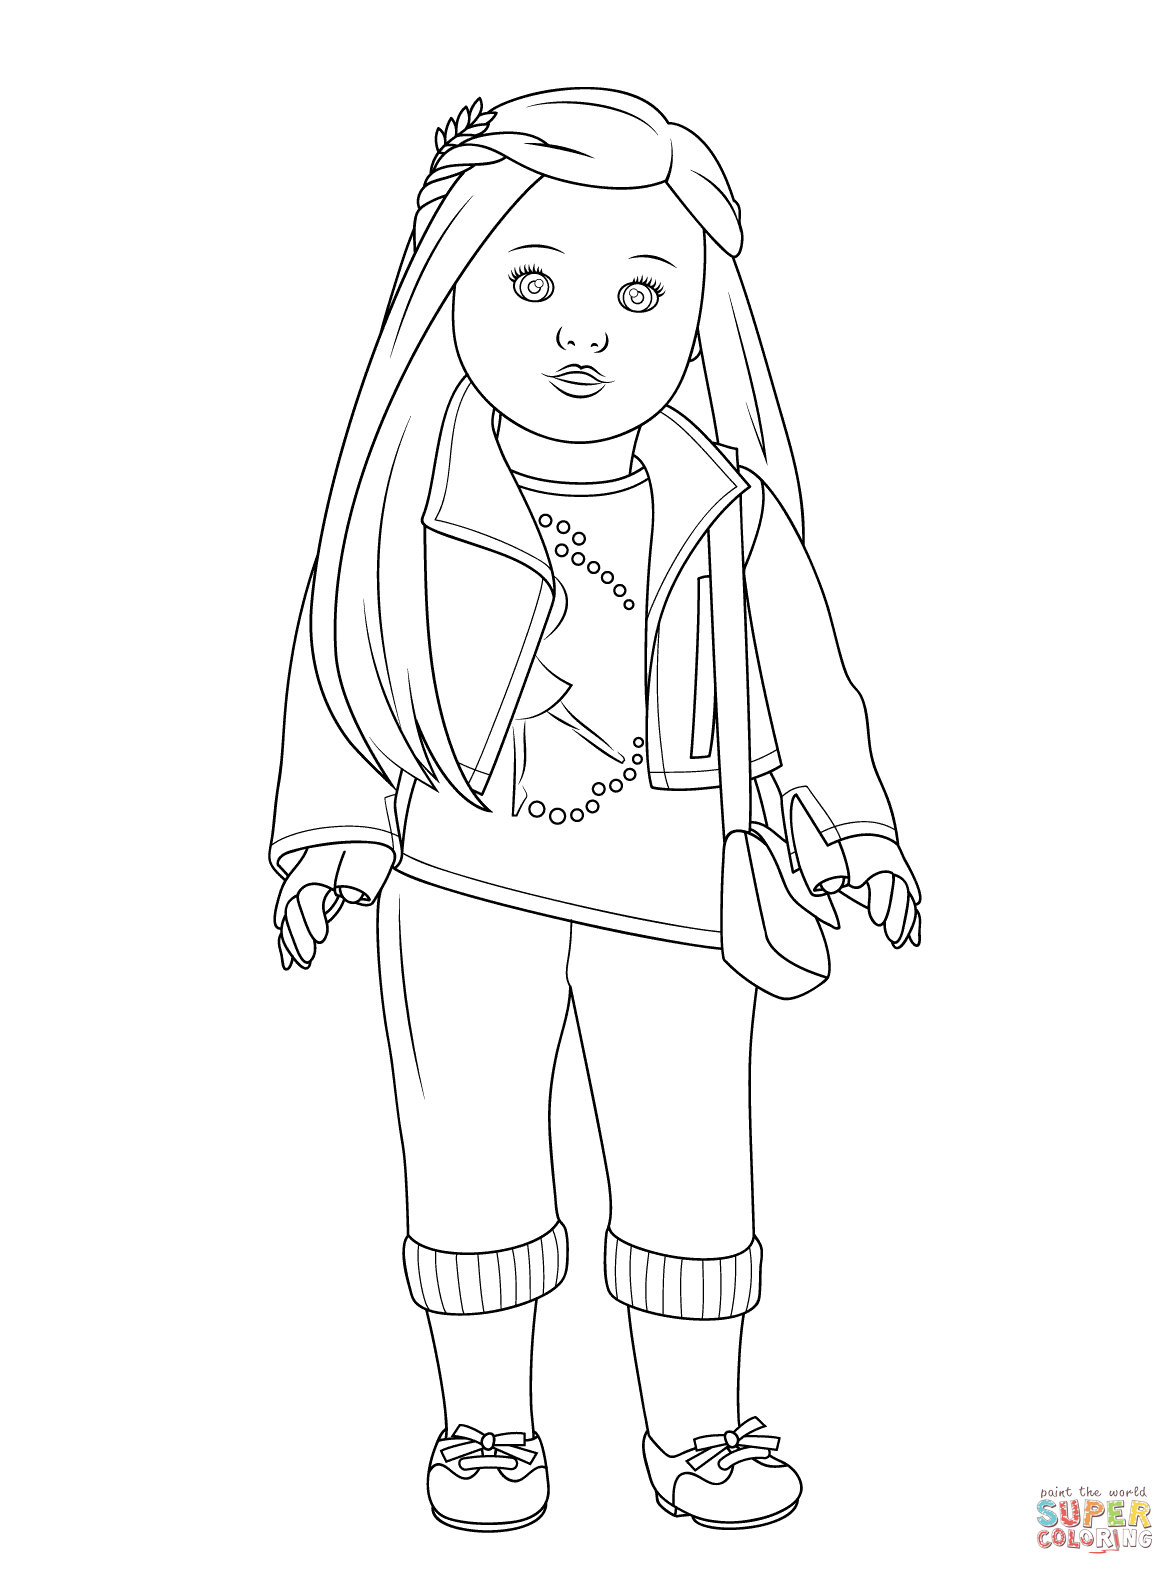 ag coloring pages free teaching tool printable agricultural coloring page pages coloring ag